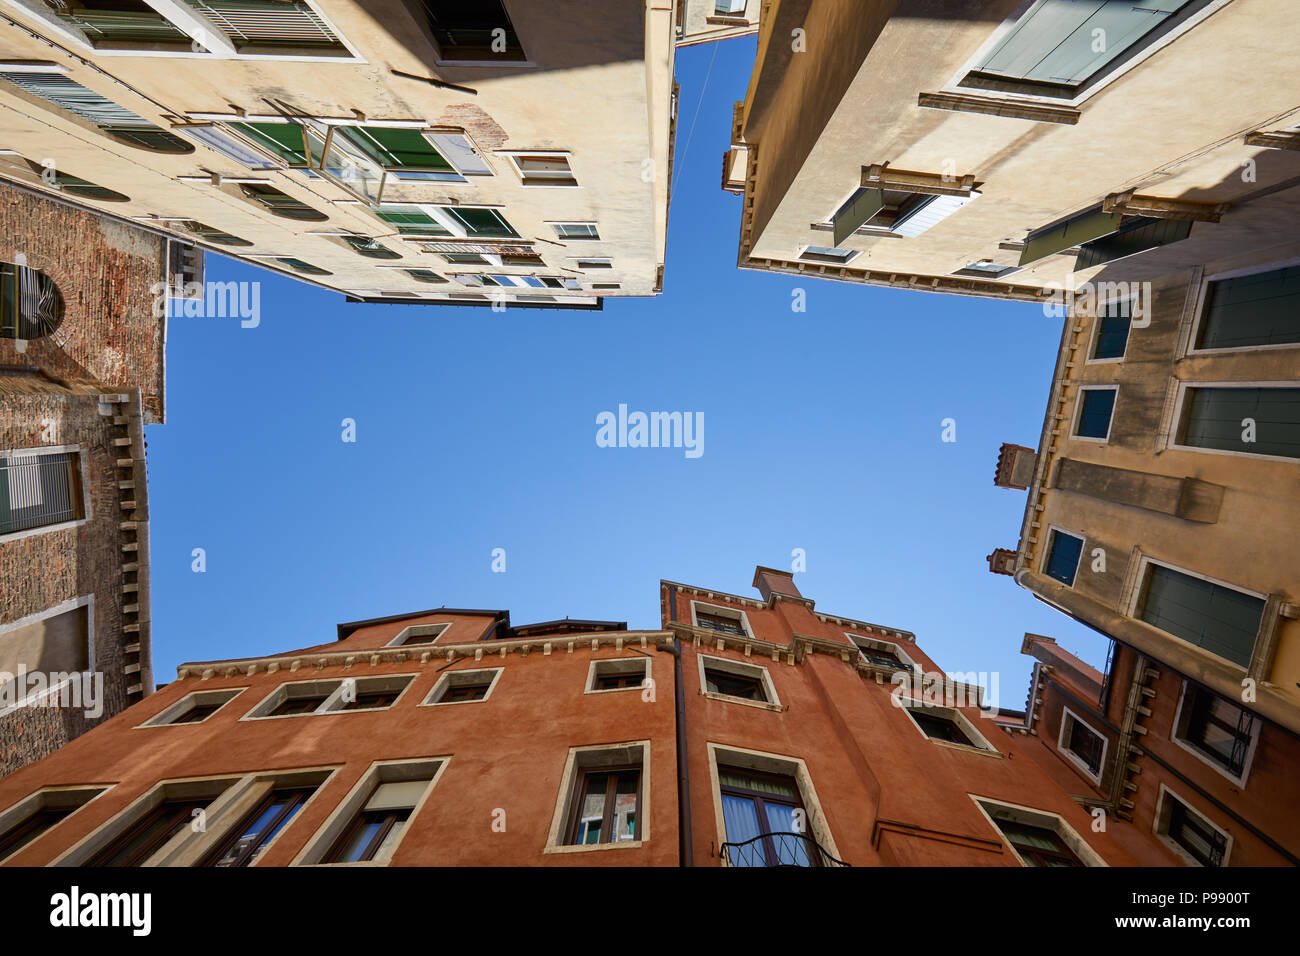 Venice buildings and houses facades low angle view in a sunny day, blue sky in Italy - Stock Image